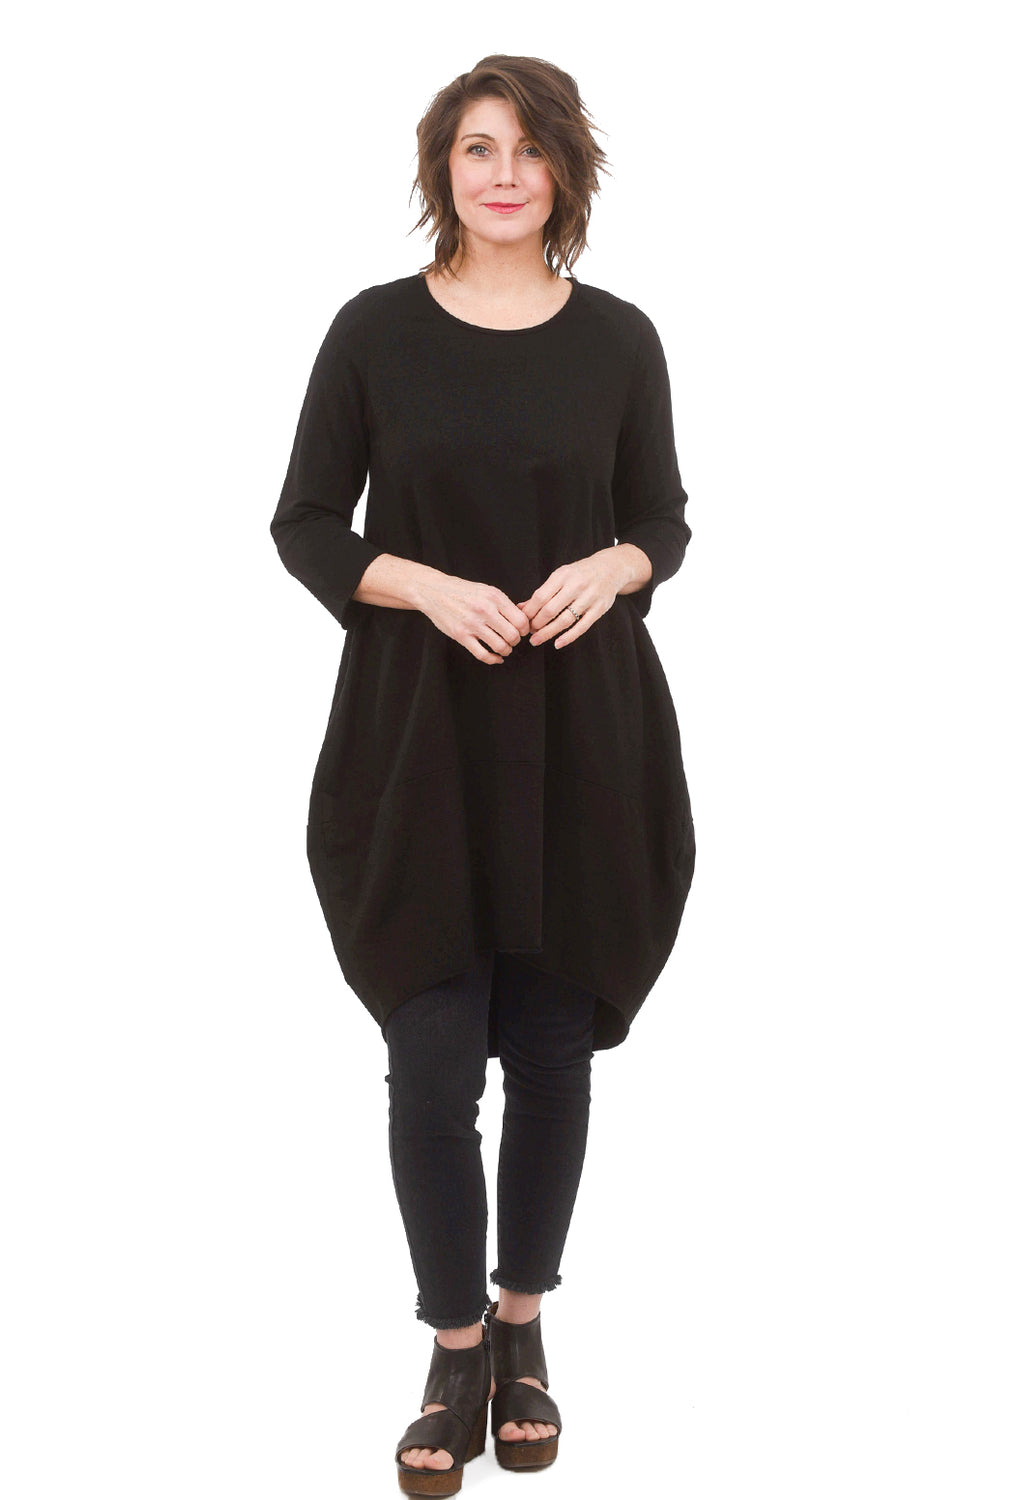 M Made in Italy Classic Knit Lantern Dress, Black